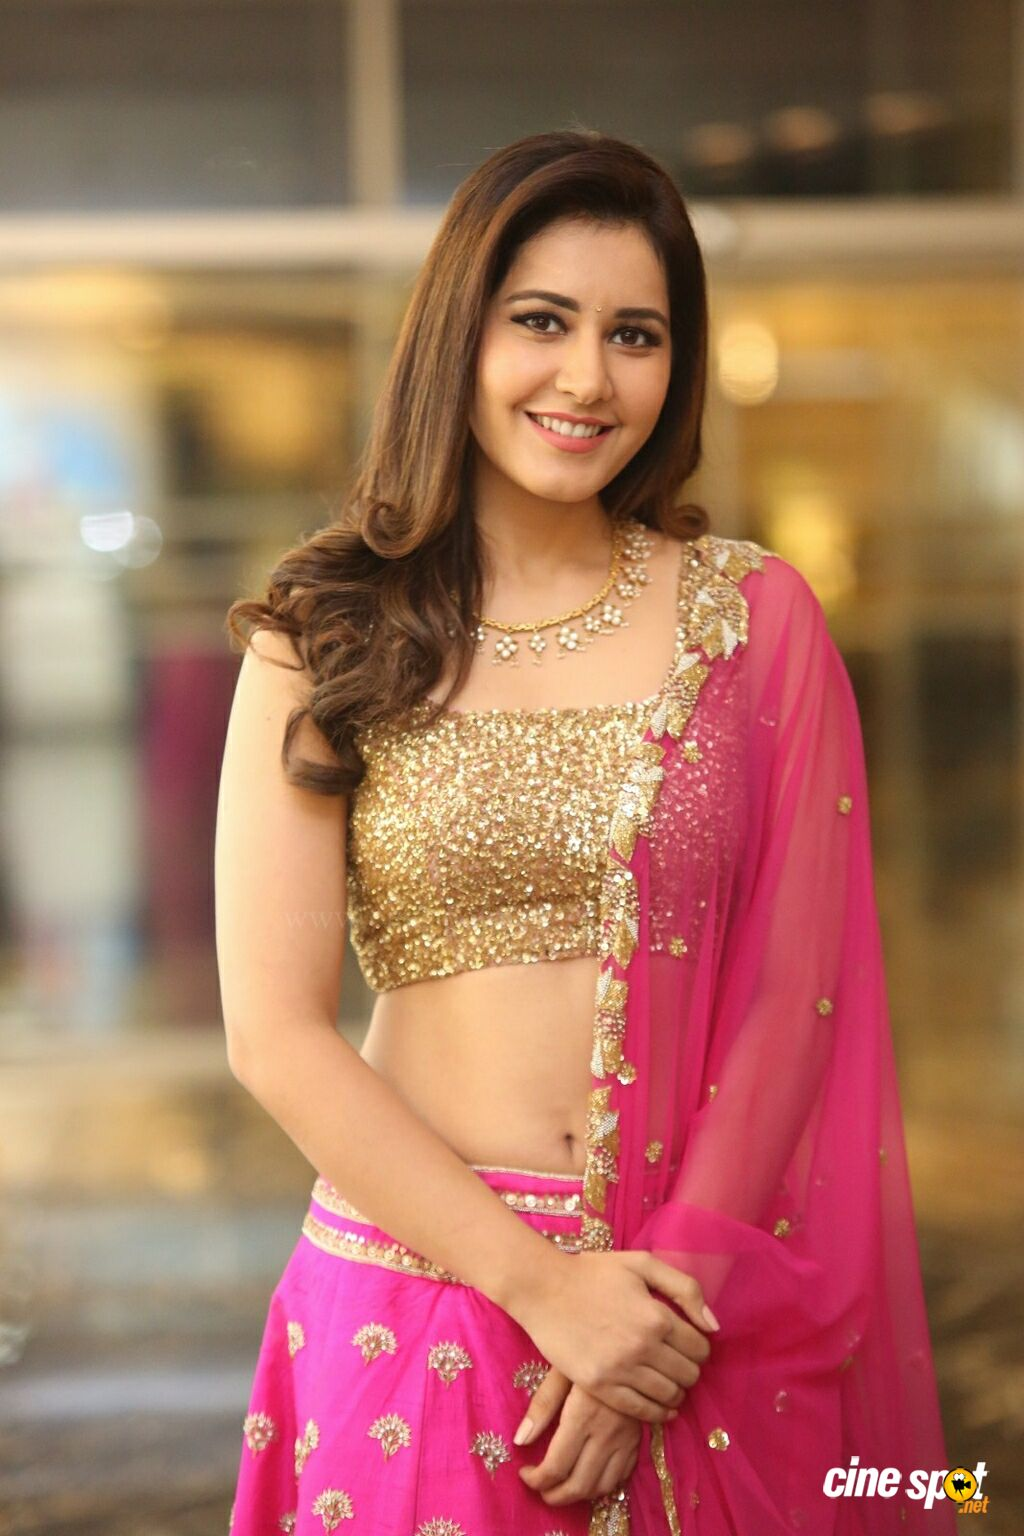 Rashi Khanna nude (69 photos) Video, Facebook, cleavage